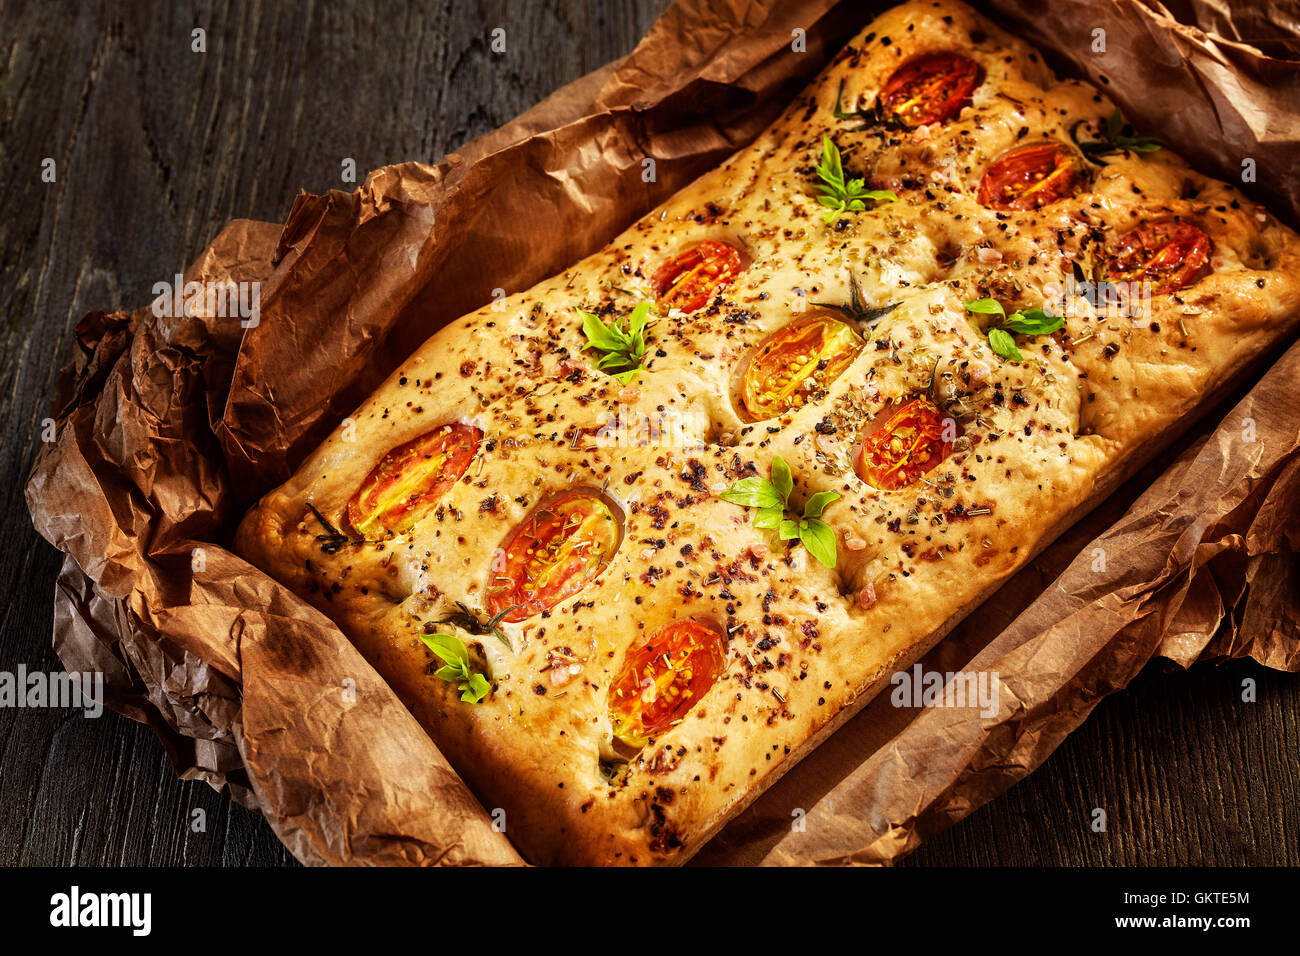 Freshly baked traditional Italian focaccia with tomatoes on an old wooden table. - Stock Image